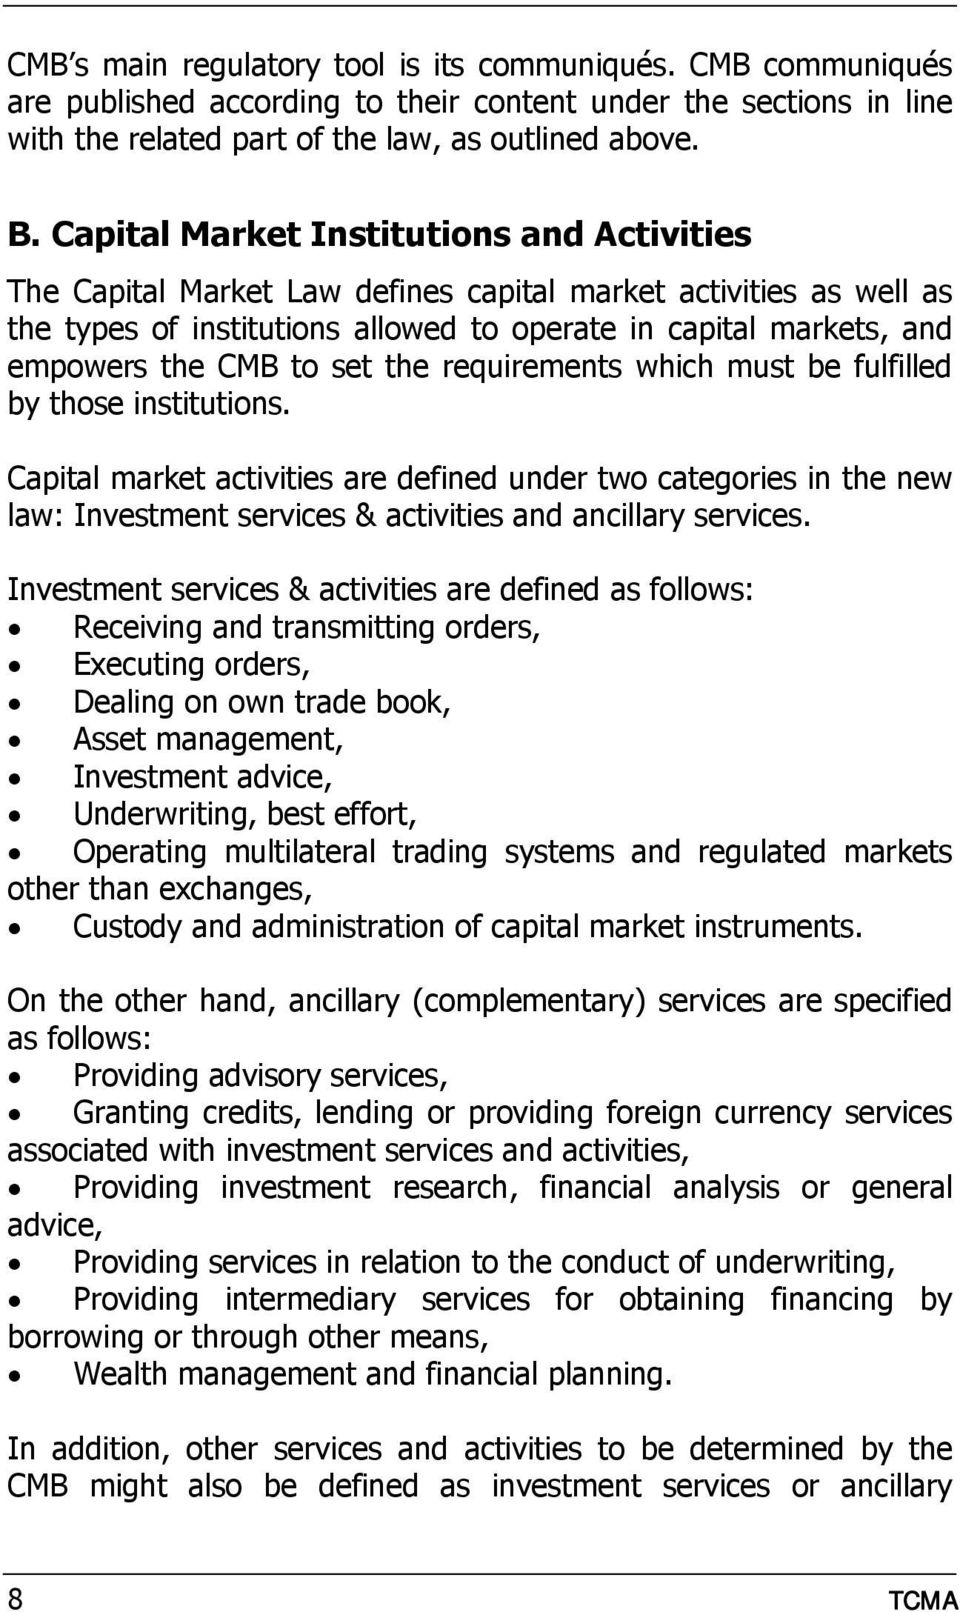 set the requirements which must be fulfilled by those institutions. Capital market activities are defined under two categories in the new law: Investment services & activities and ancillary services.